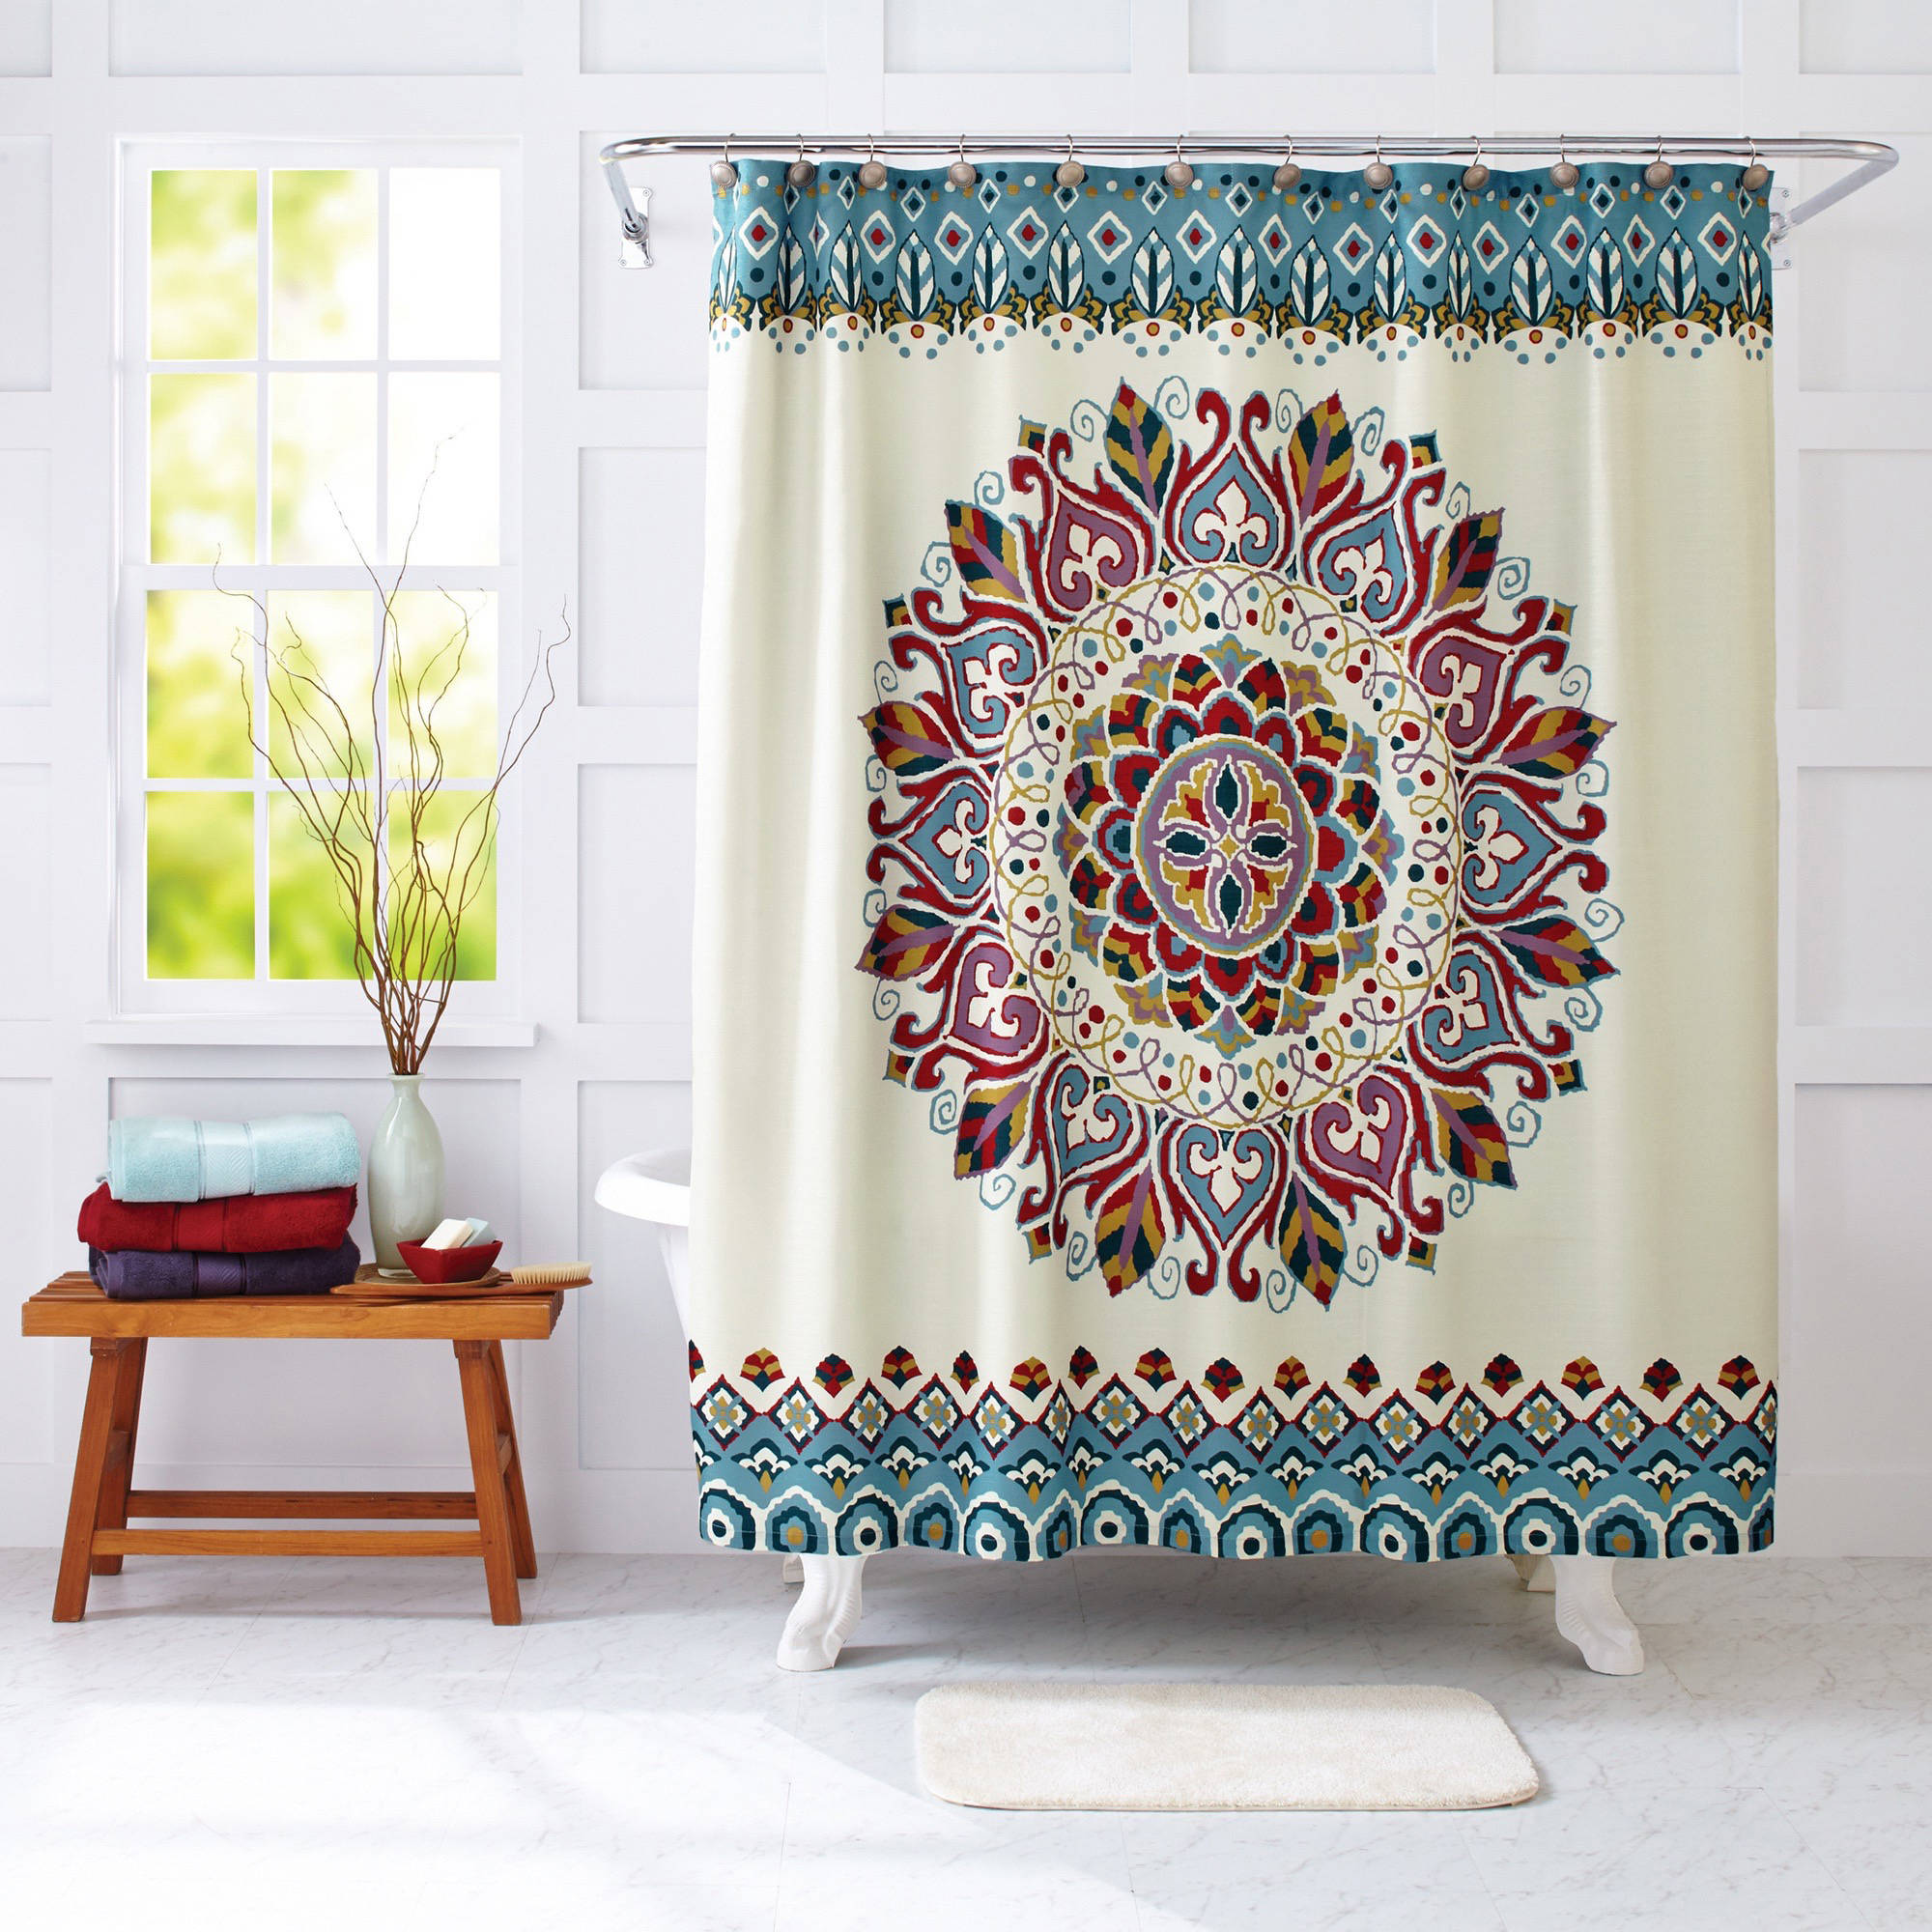 Mint green shower curtain and rugs - Better Homes And Gardens Medallion Fabric Shower Curtain